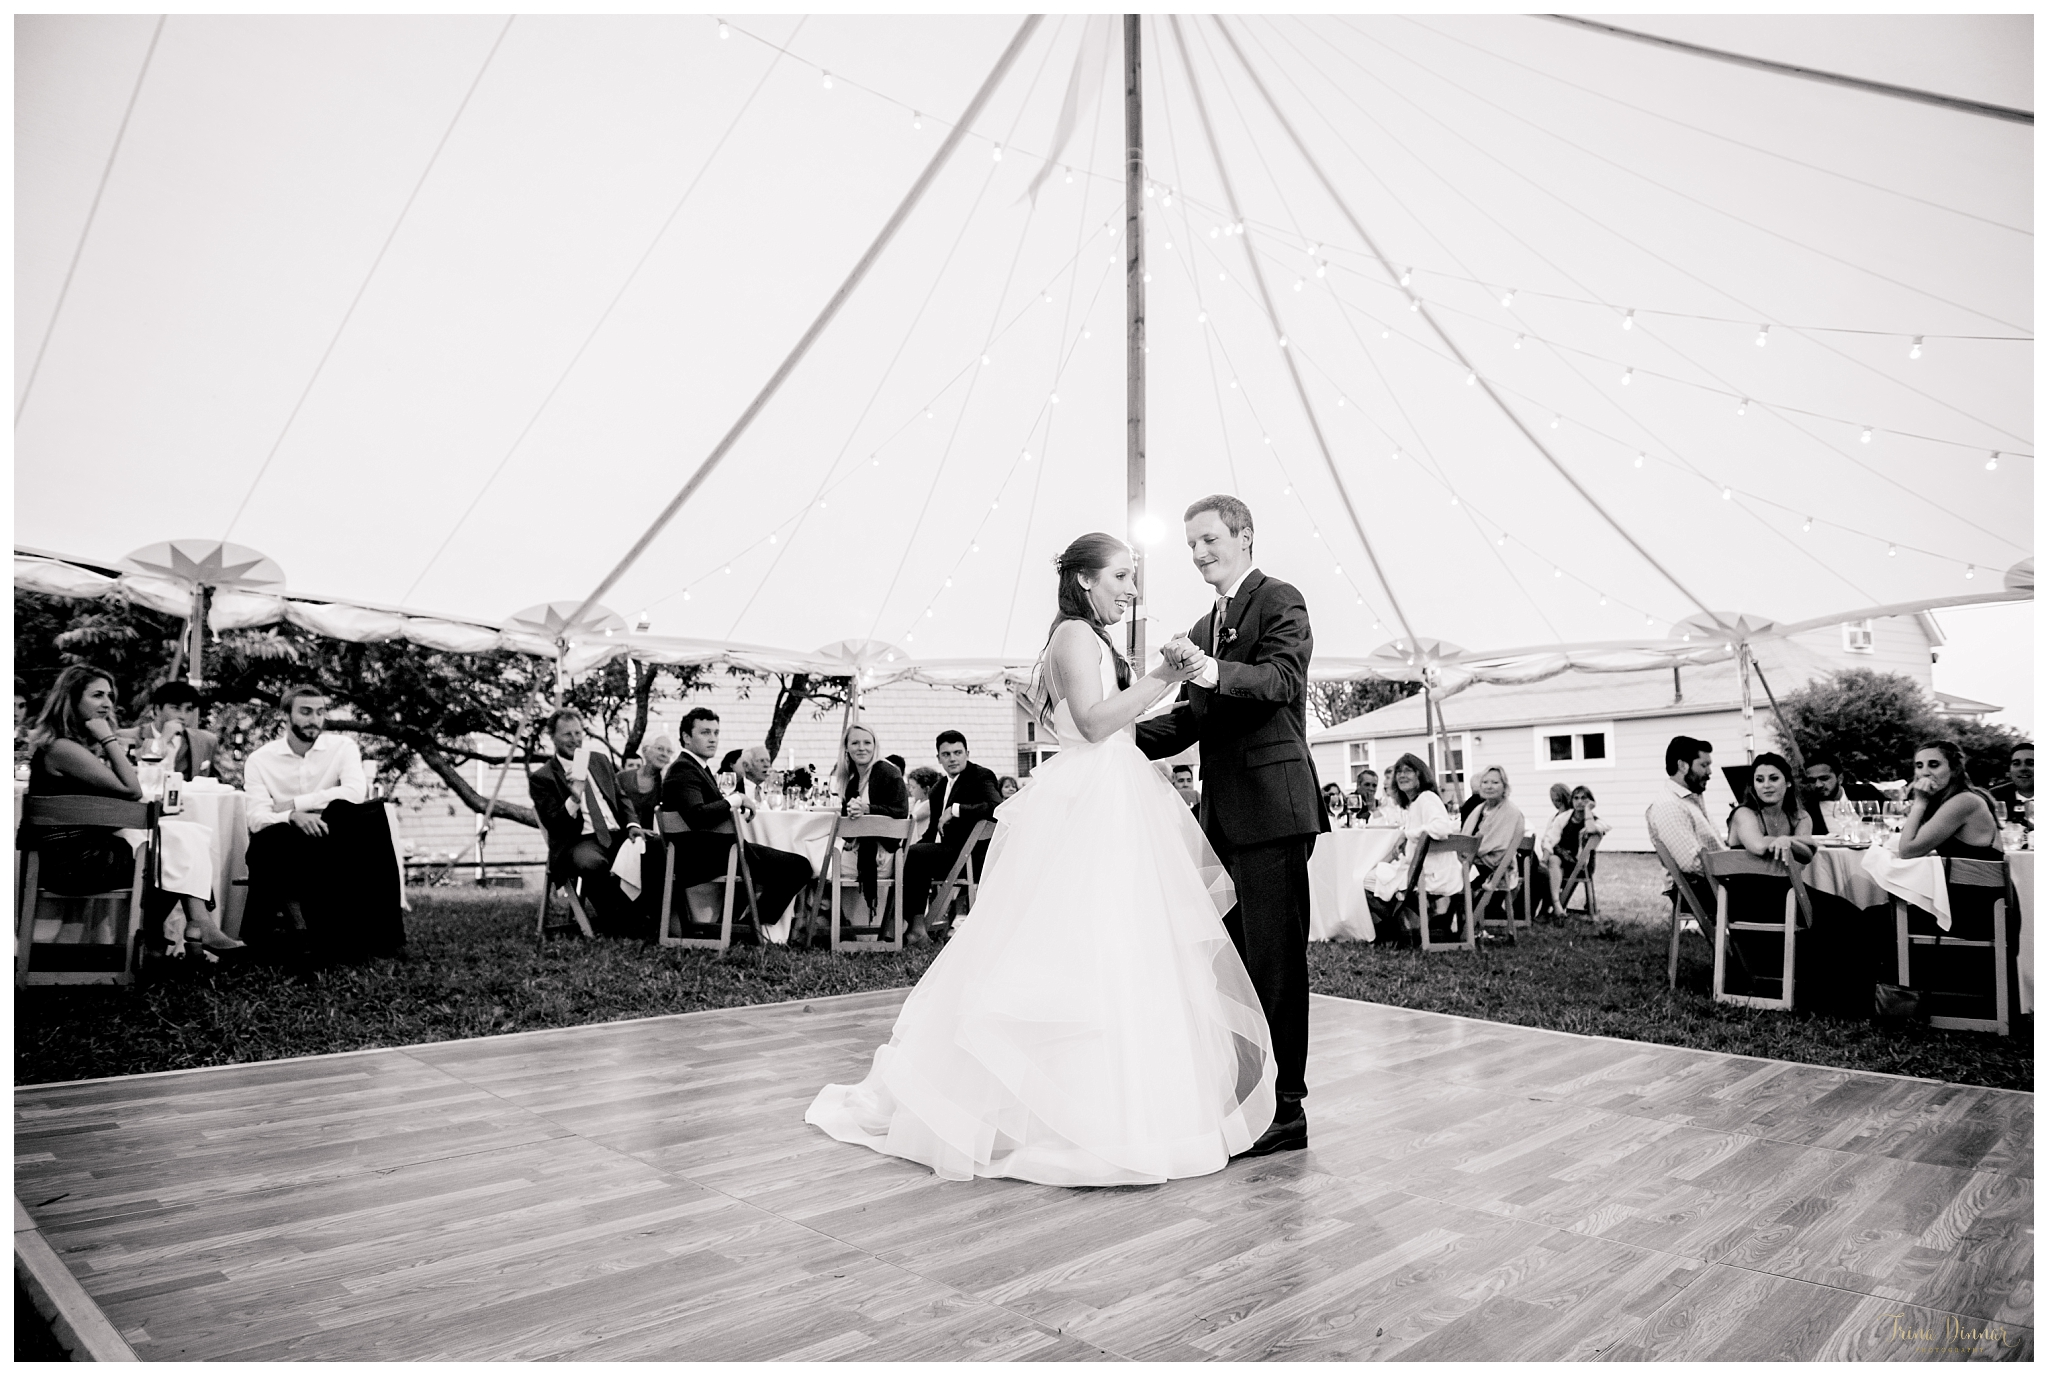 Hannah and Michael's Tented Maine Wedding Reception First Dance